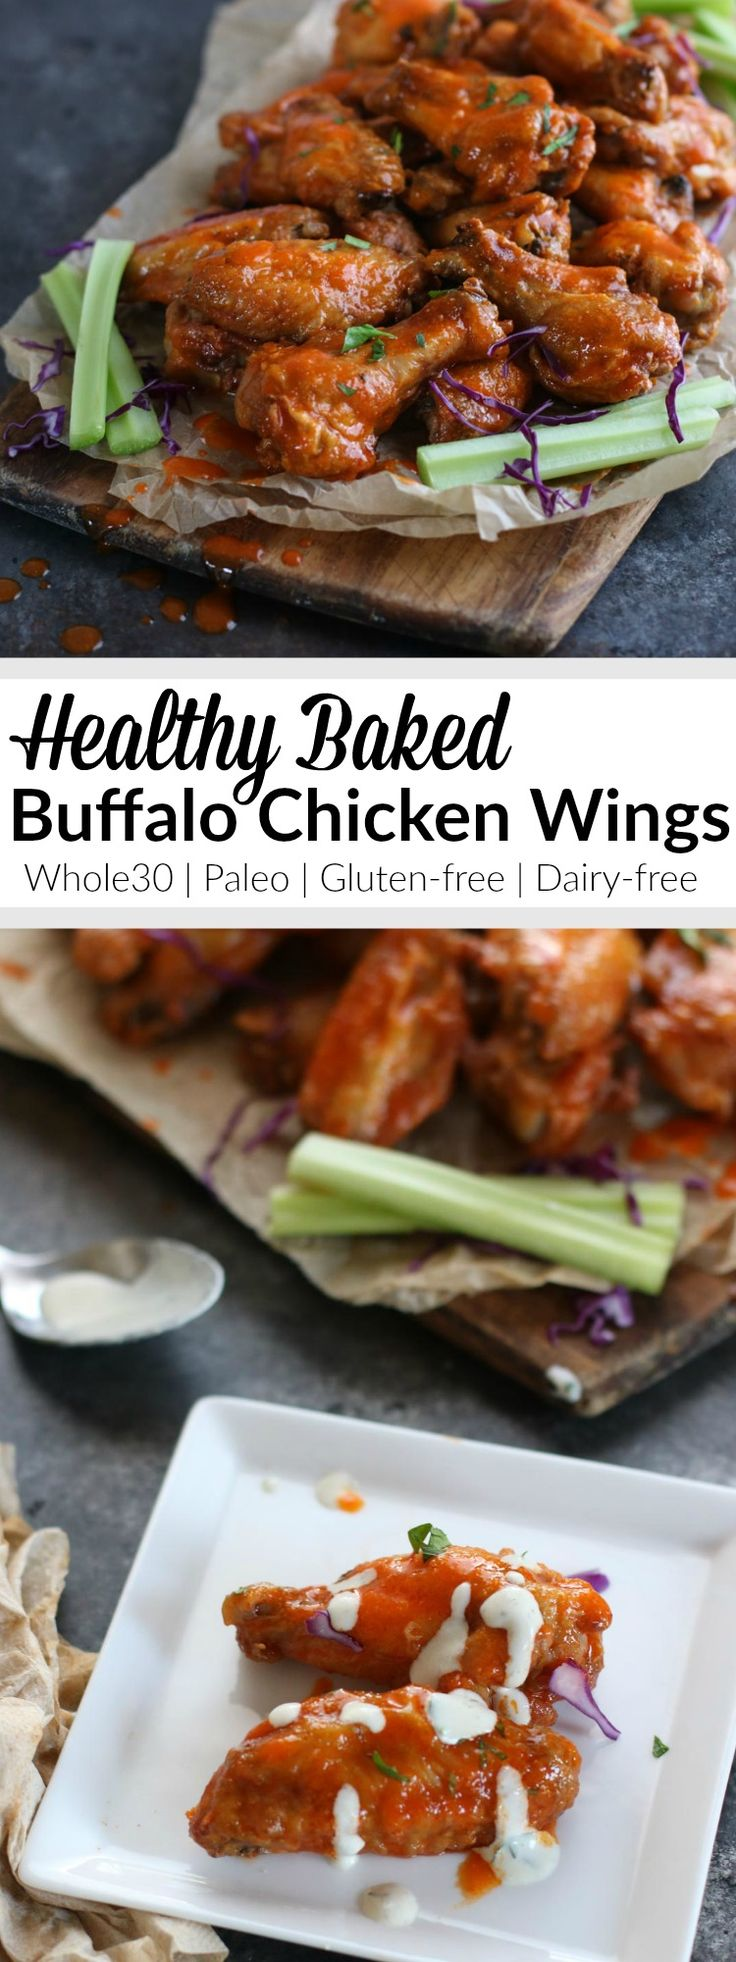 One simple ingredient gives these wings the crispy skin you crave without frying. Tossed with a 5-ingredient Buffalo sauce, they're every bit as good as the real thing - only healthier! | http://therealfoodrds.com/crispy-baked-buffalo-wings/